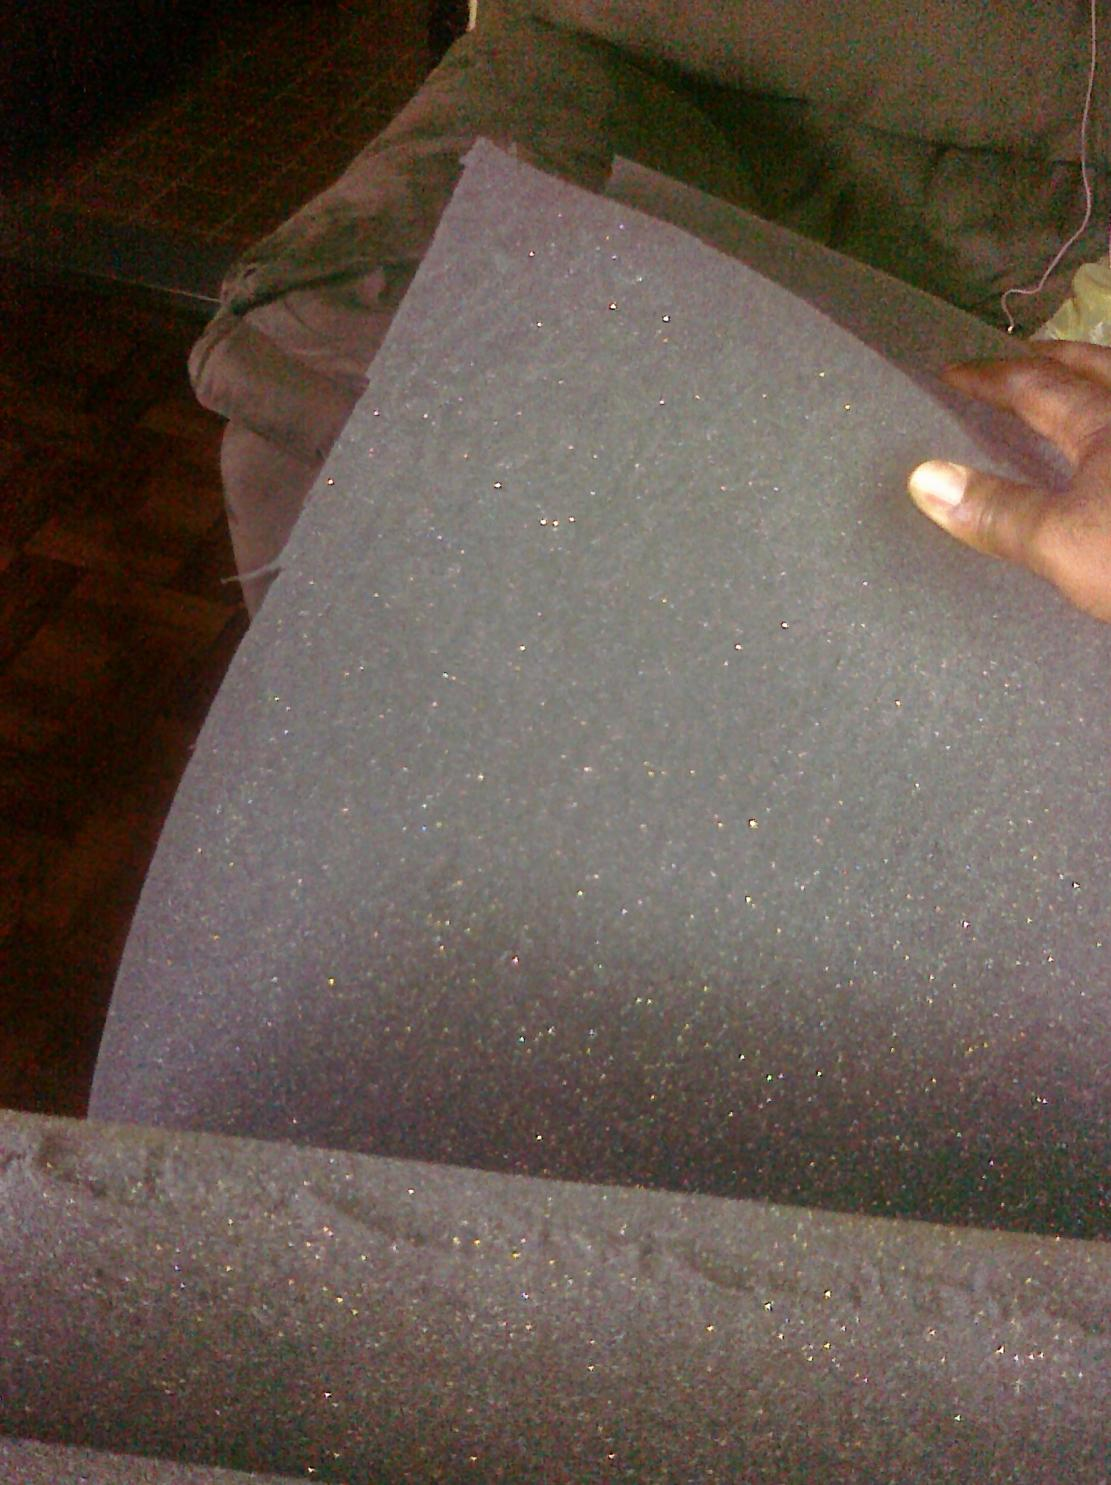 High Density Foam Seat Cushion | High Density Upholstery Foam | Seat Foam Padding